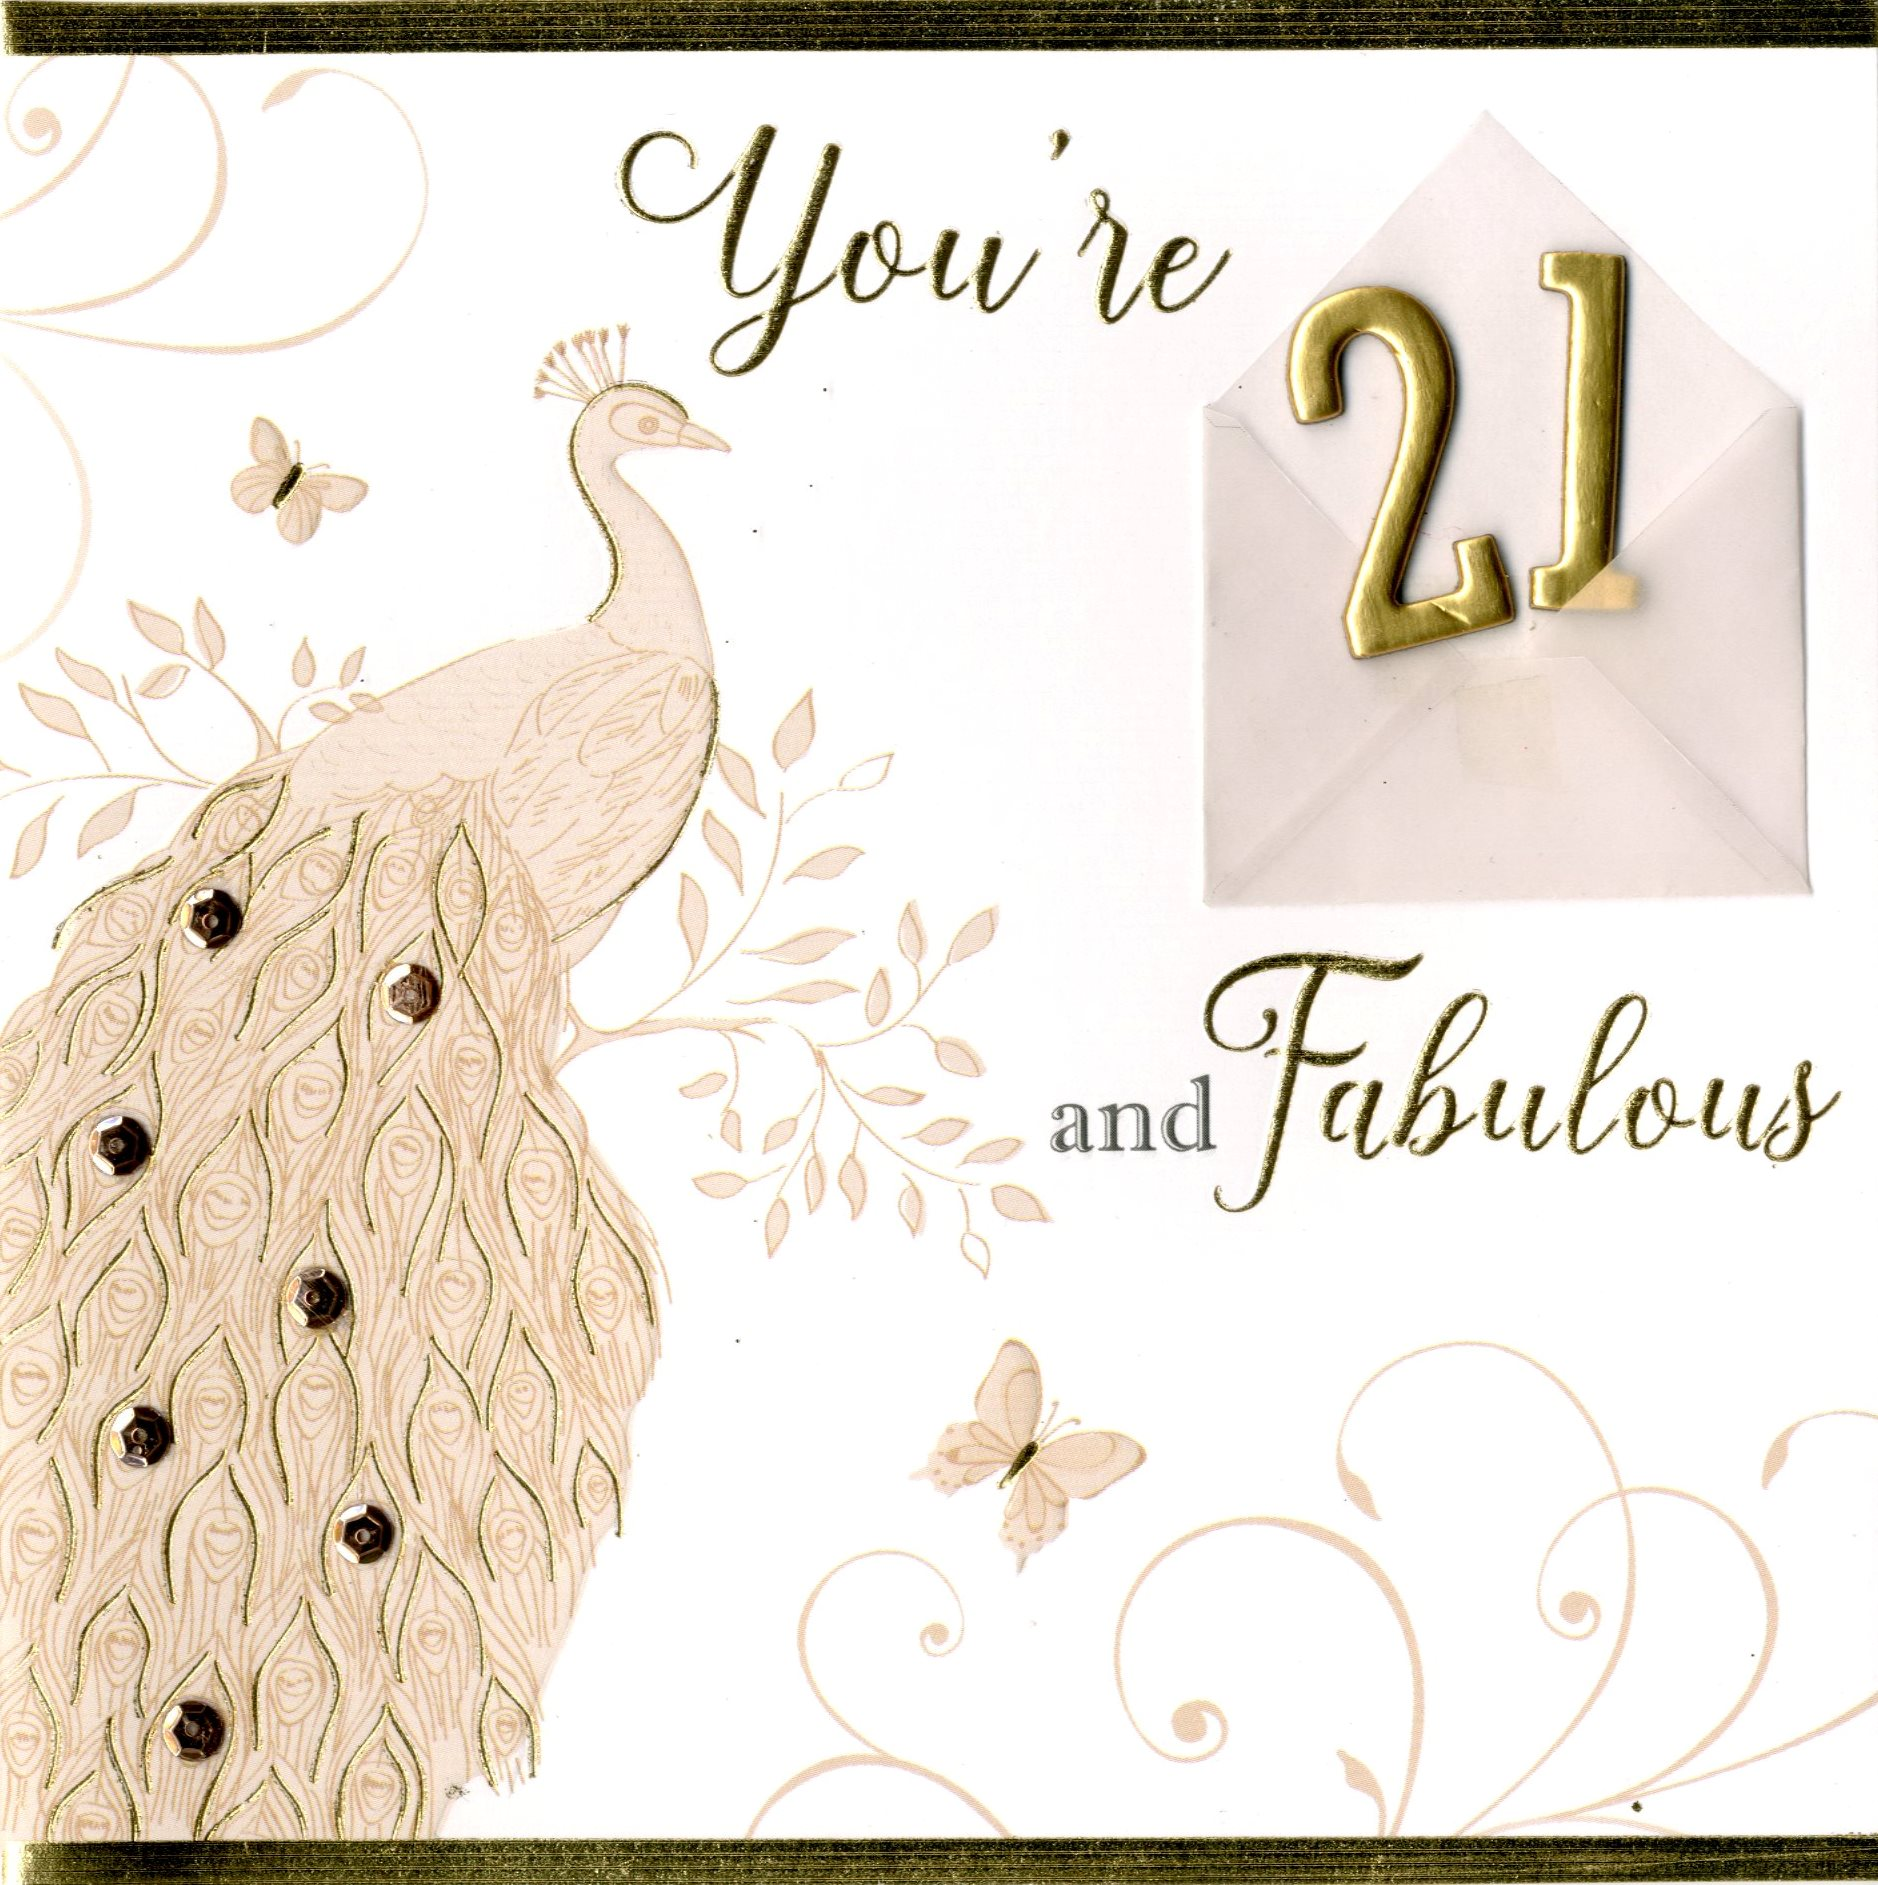 21st birthday greeting cards ; NH039